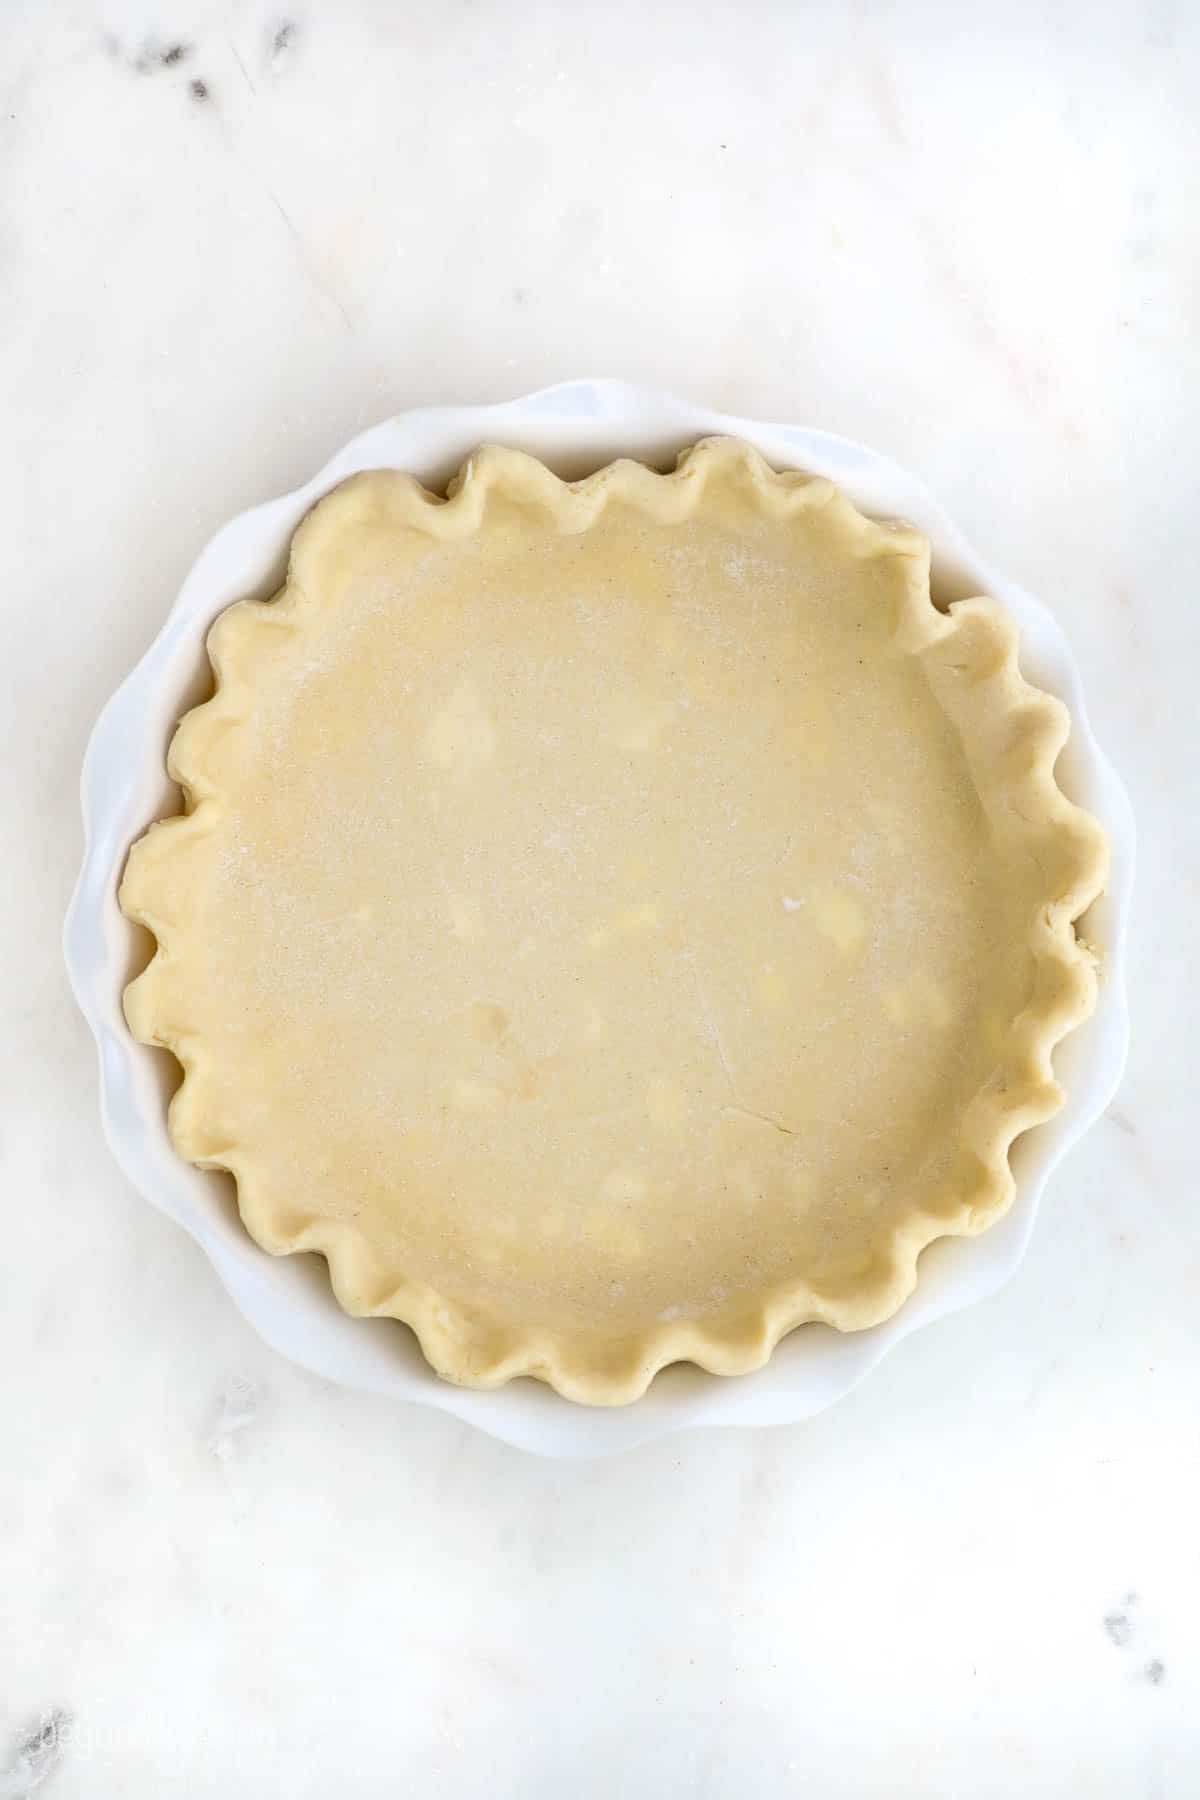 An unbaked pie crust with crimped edges in a white pie dish